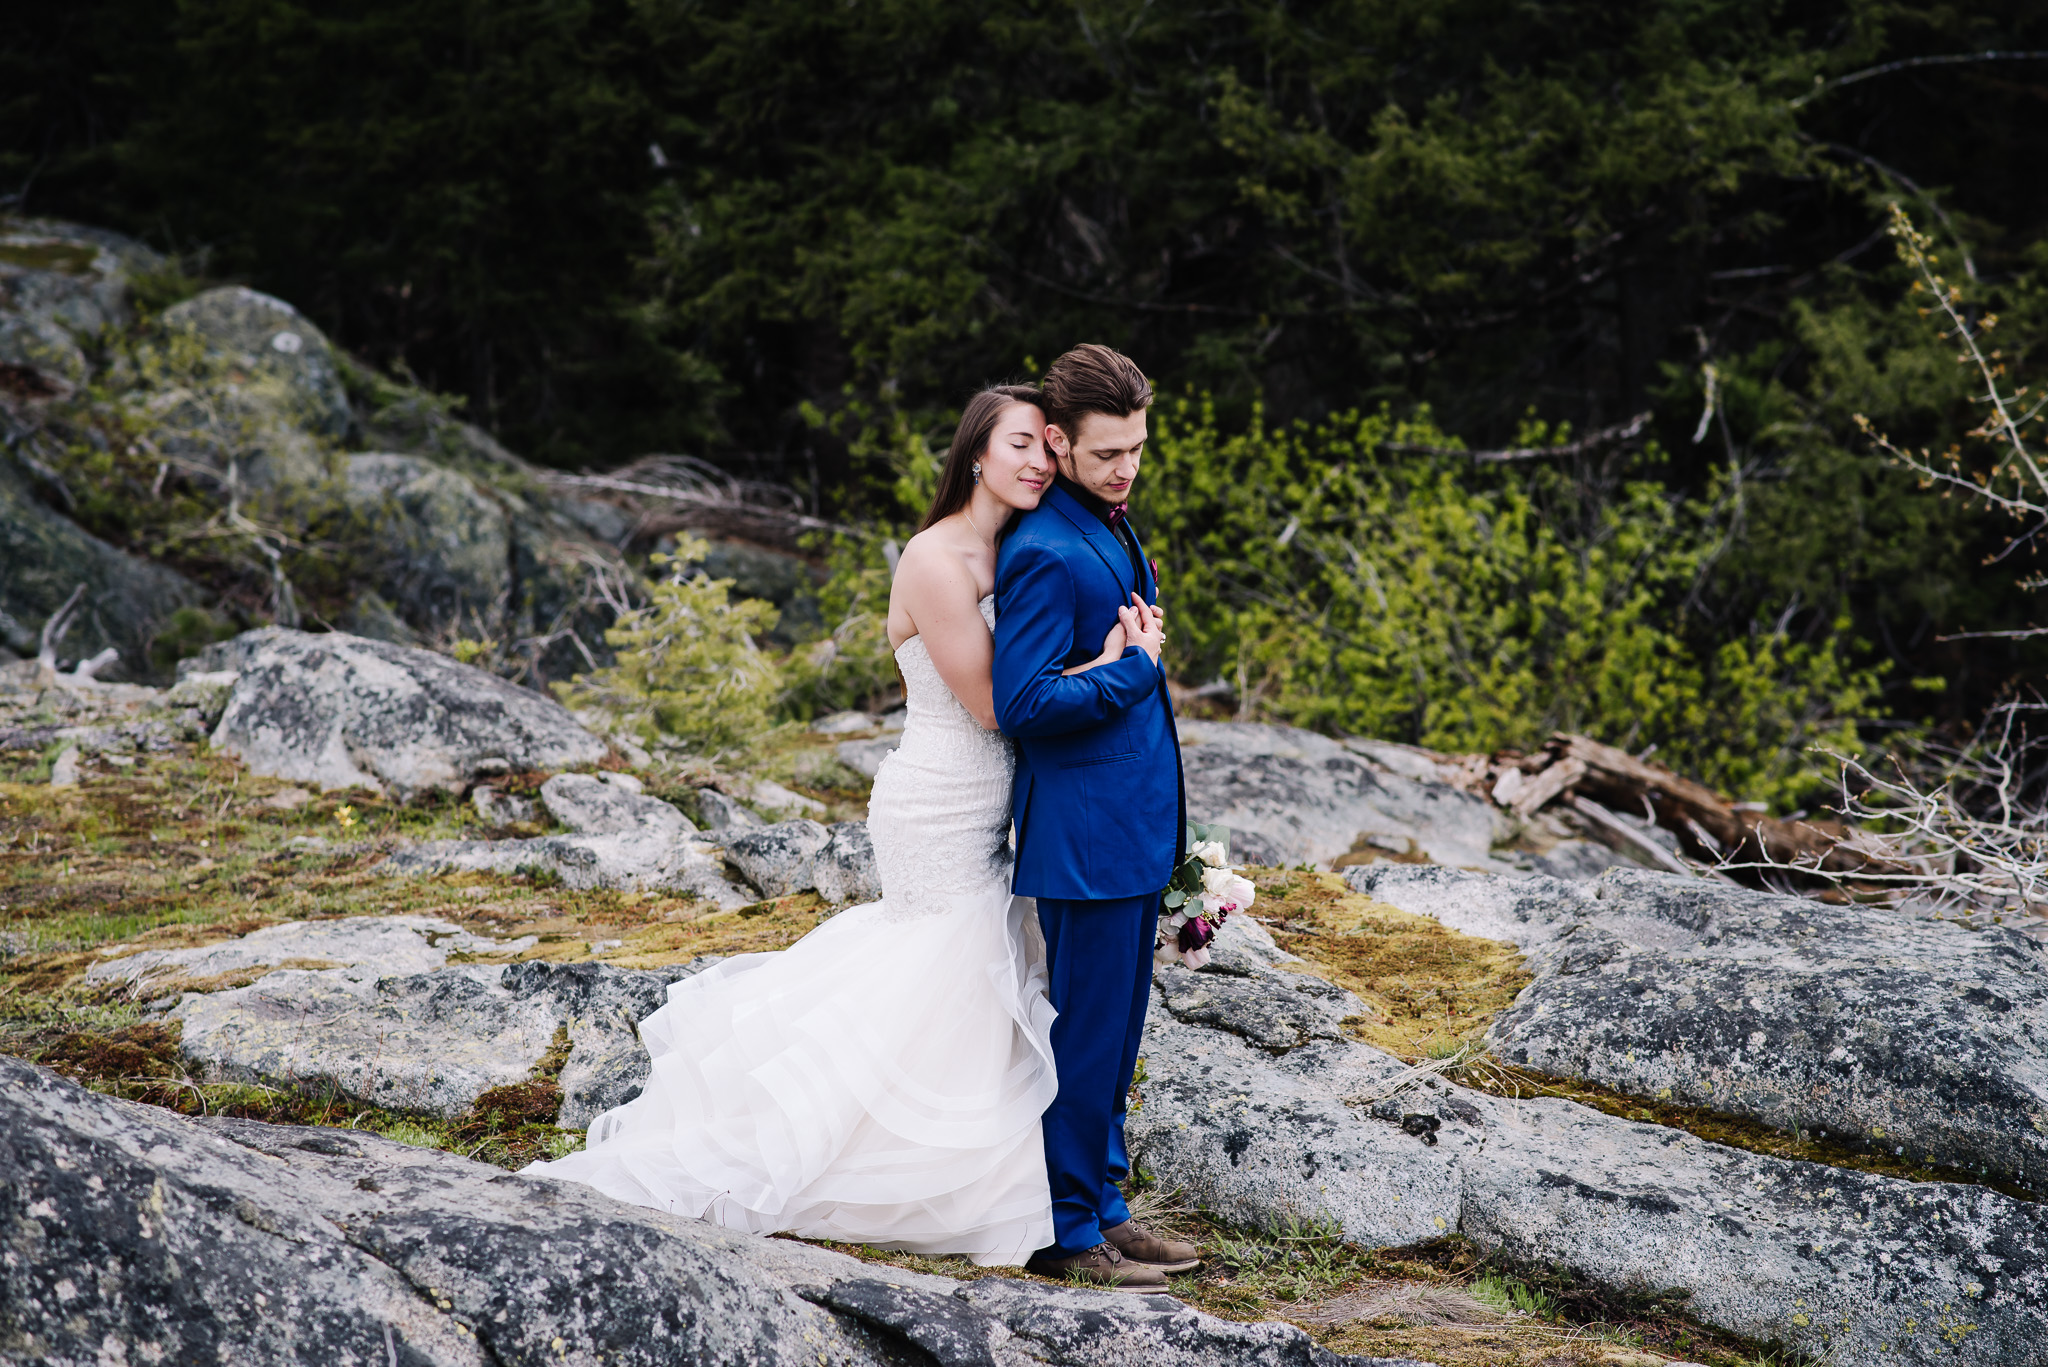 McCall-Idaho-wedding-photographer-couple-embracing-on-rock.jpg